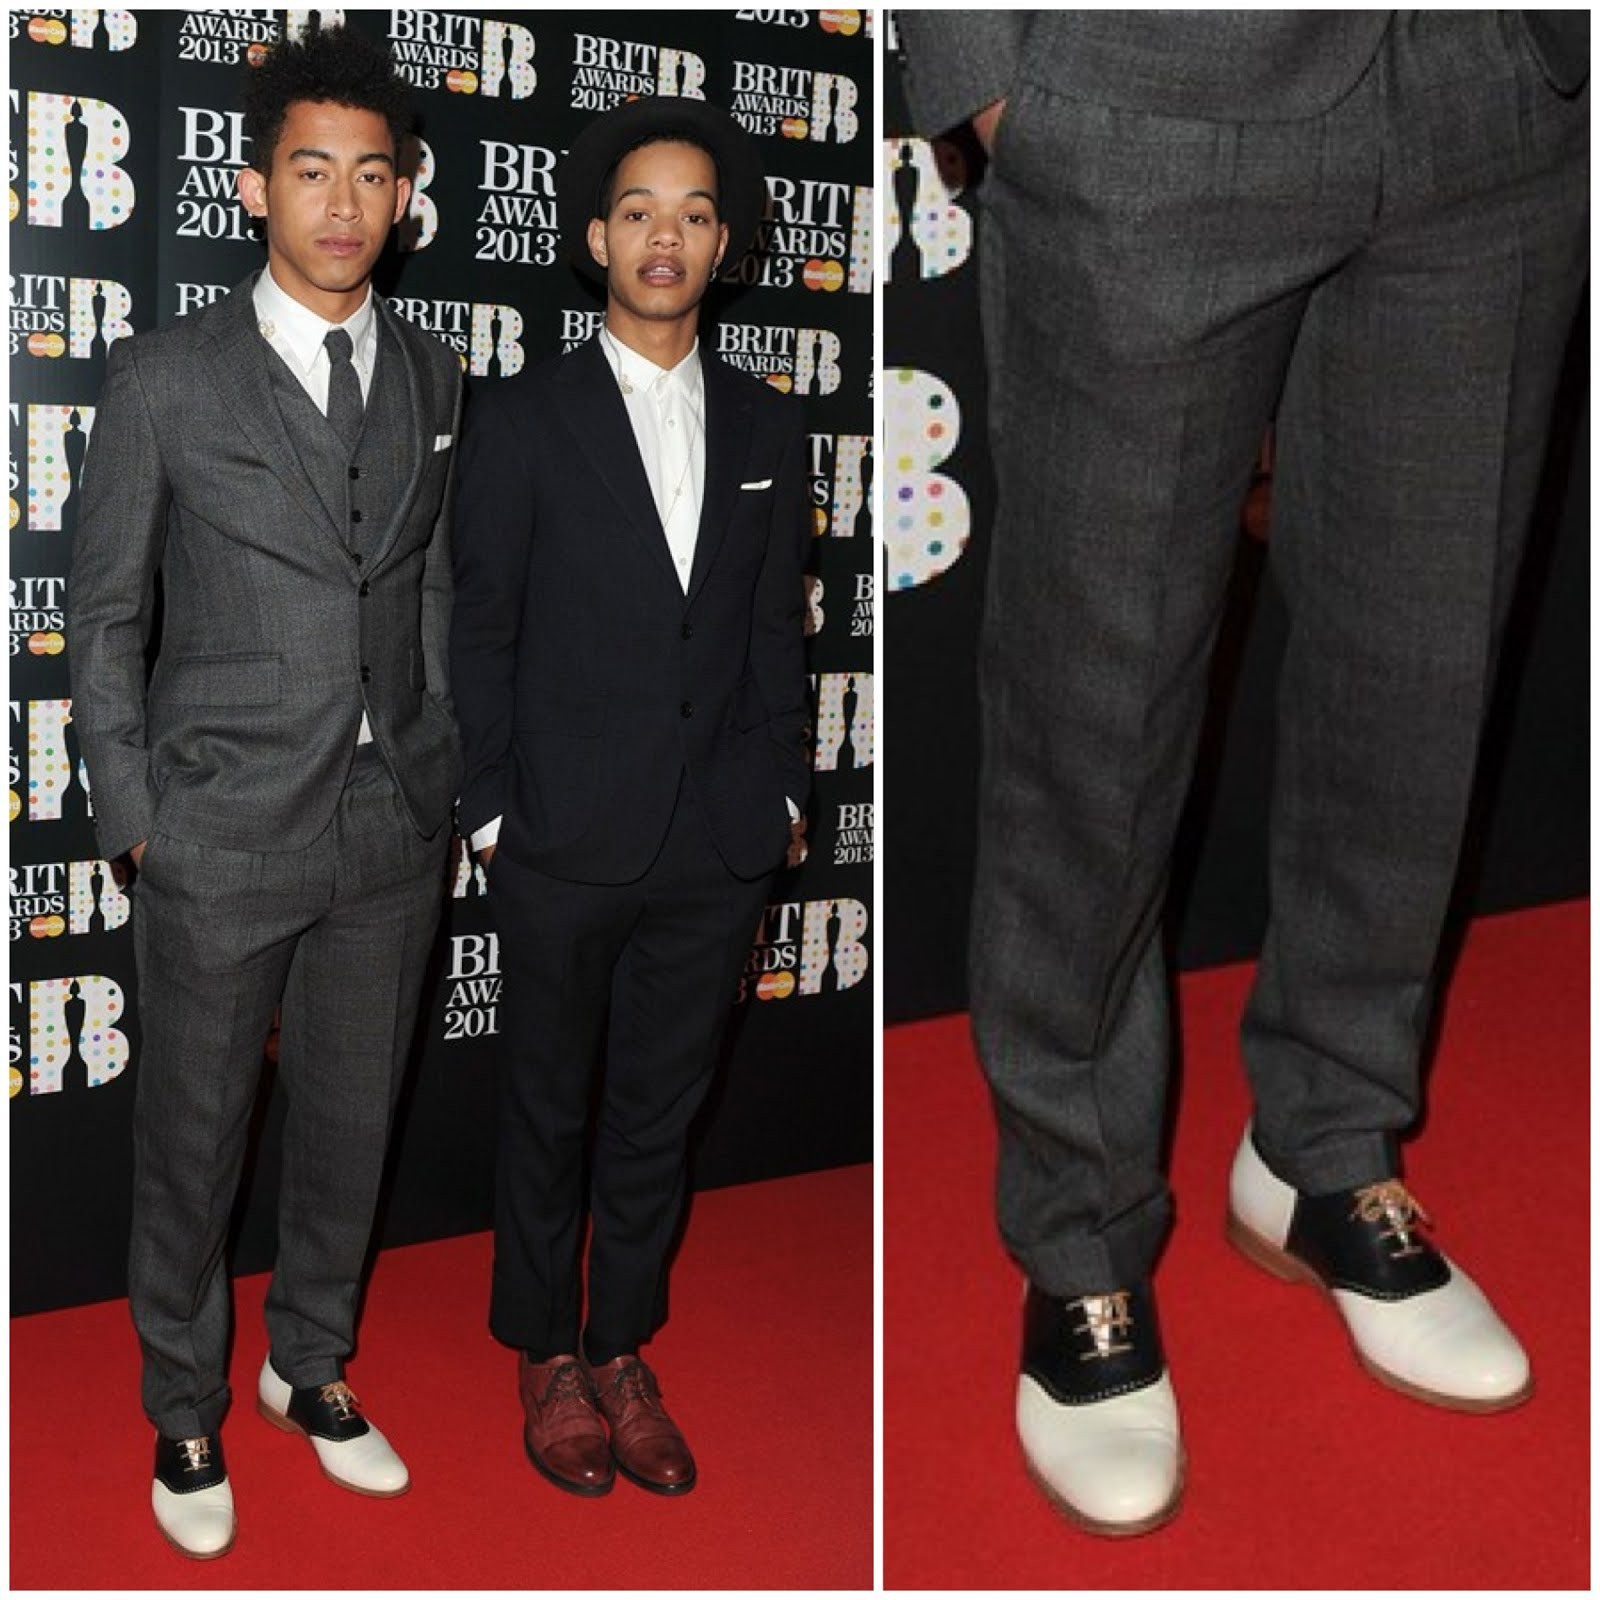 00O00 Menswear Blog Rizzle Kicks in Mr Hare Jerry Lees - Brit Awards 2013 #Brits2013